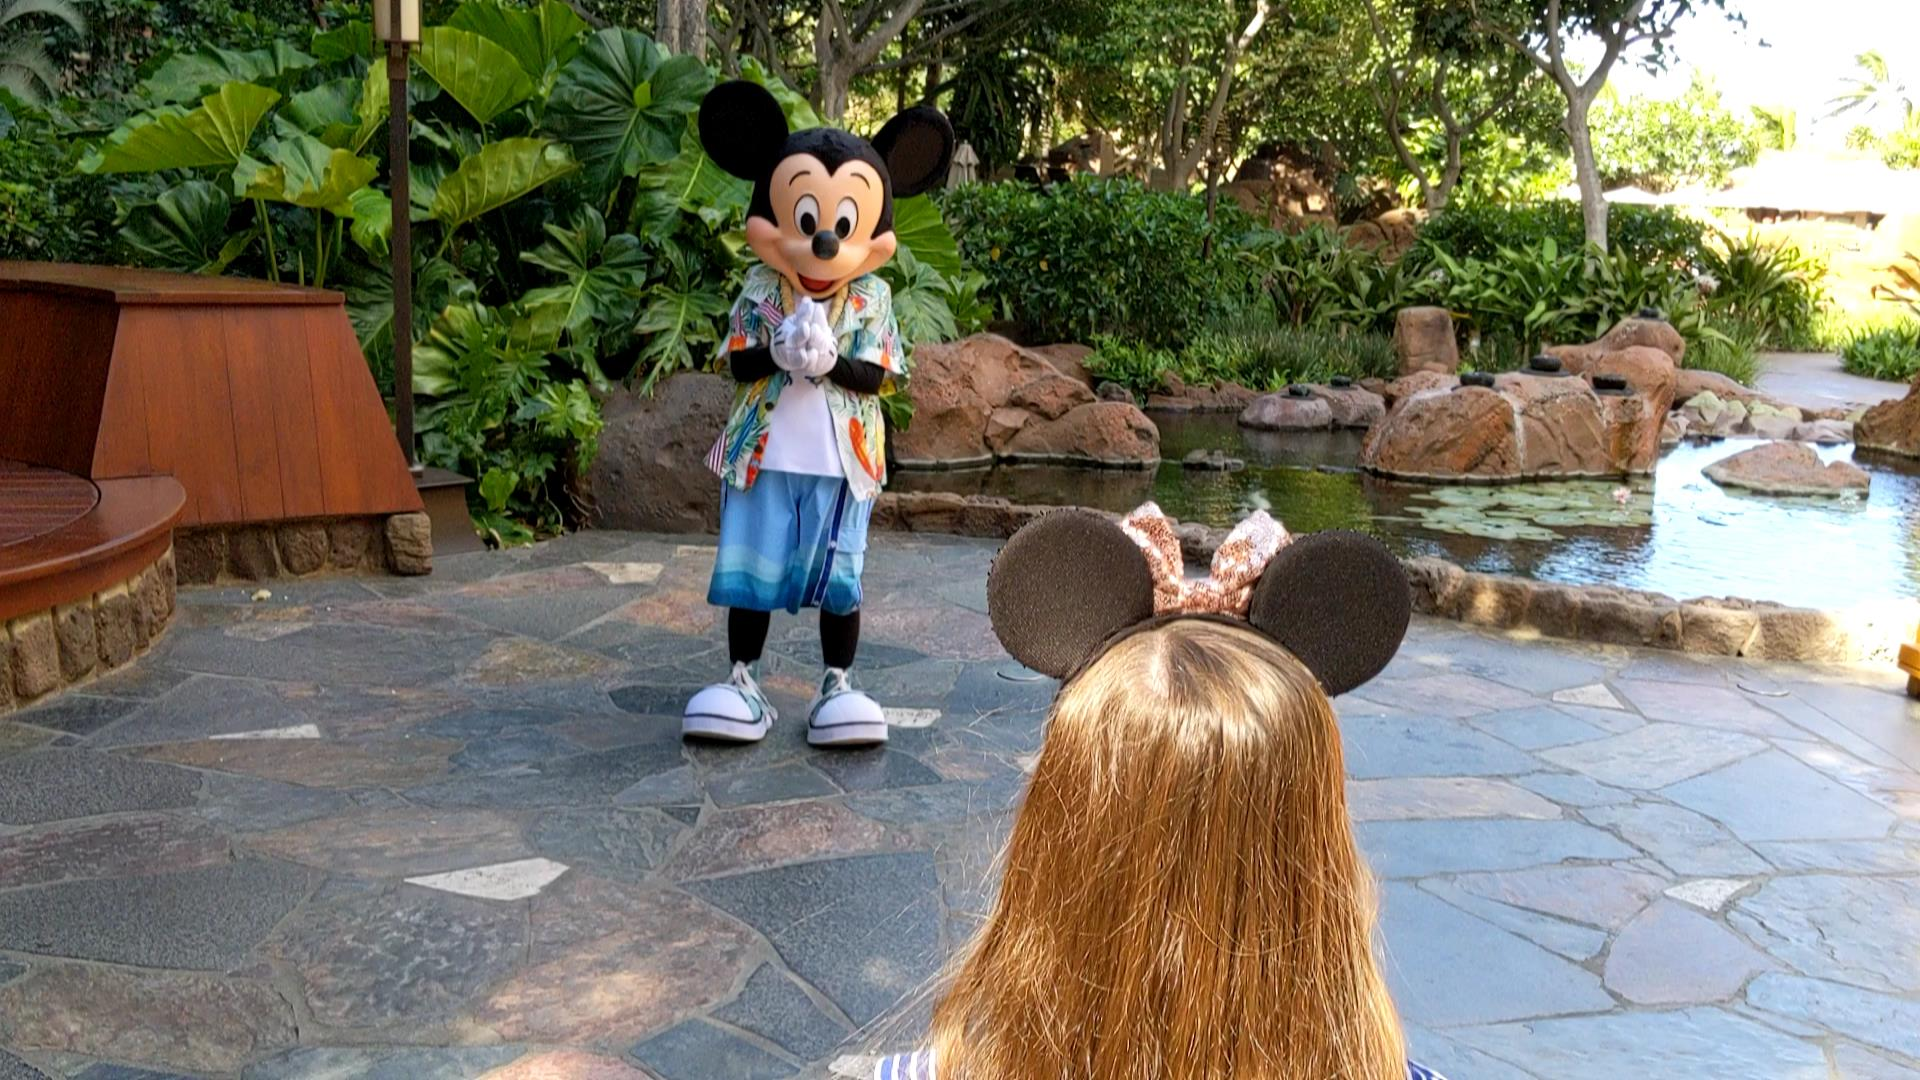 Aunty's Breakfast Celebration is the only place to see Mickey at a Disney Aulani character meal. Find out more in our Aulani character breakfast review. #disneyaulani #aulani #disneycharacters #mickey #mickeybreakfast